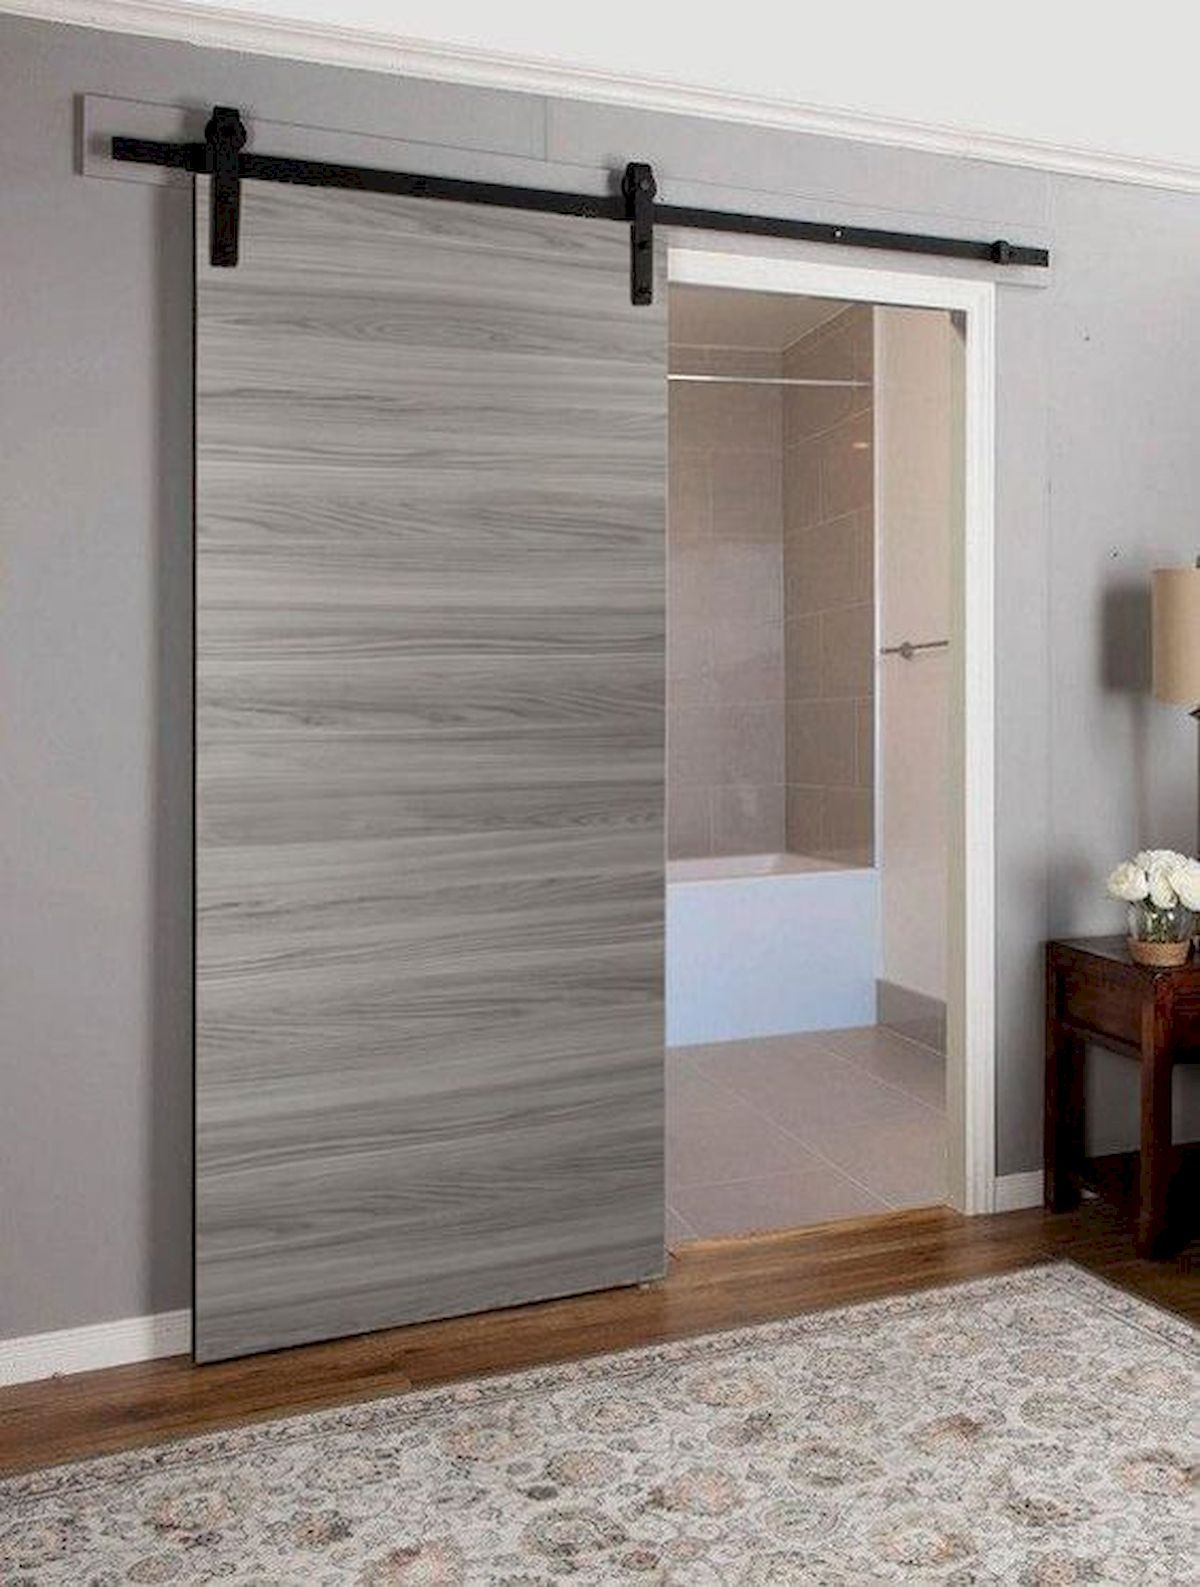 33 Fantastic Barn Door Design Ideas33decor Barn Door Decor Wood Barn Door Door Design Interior